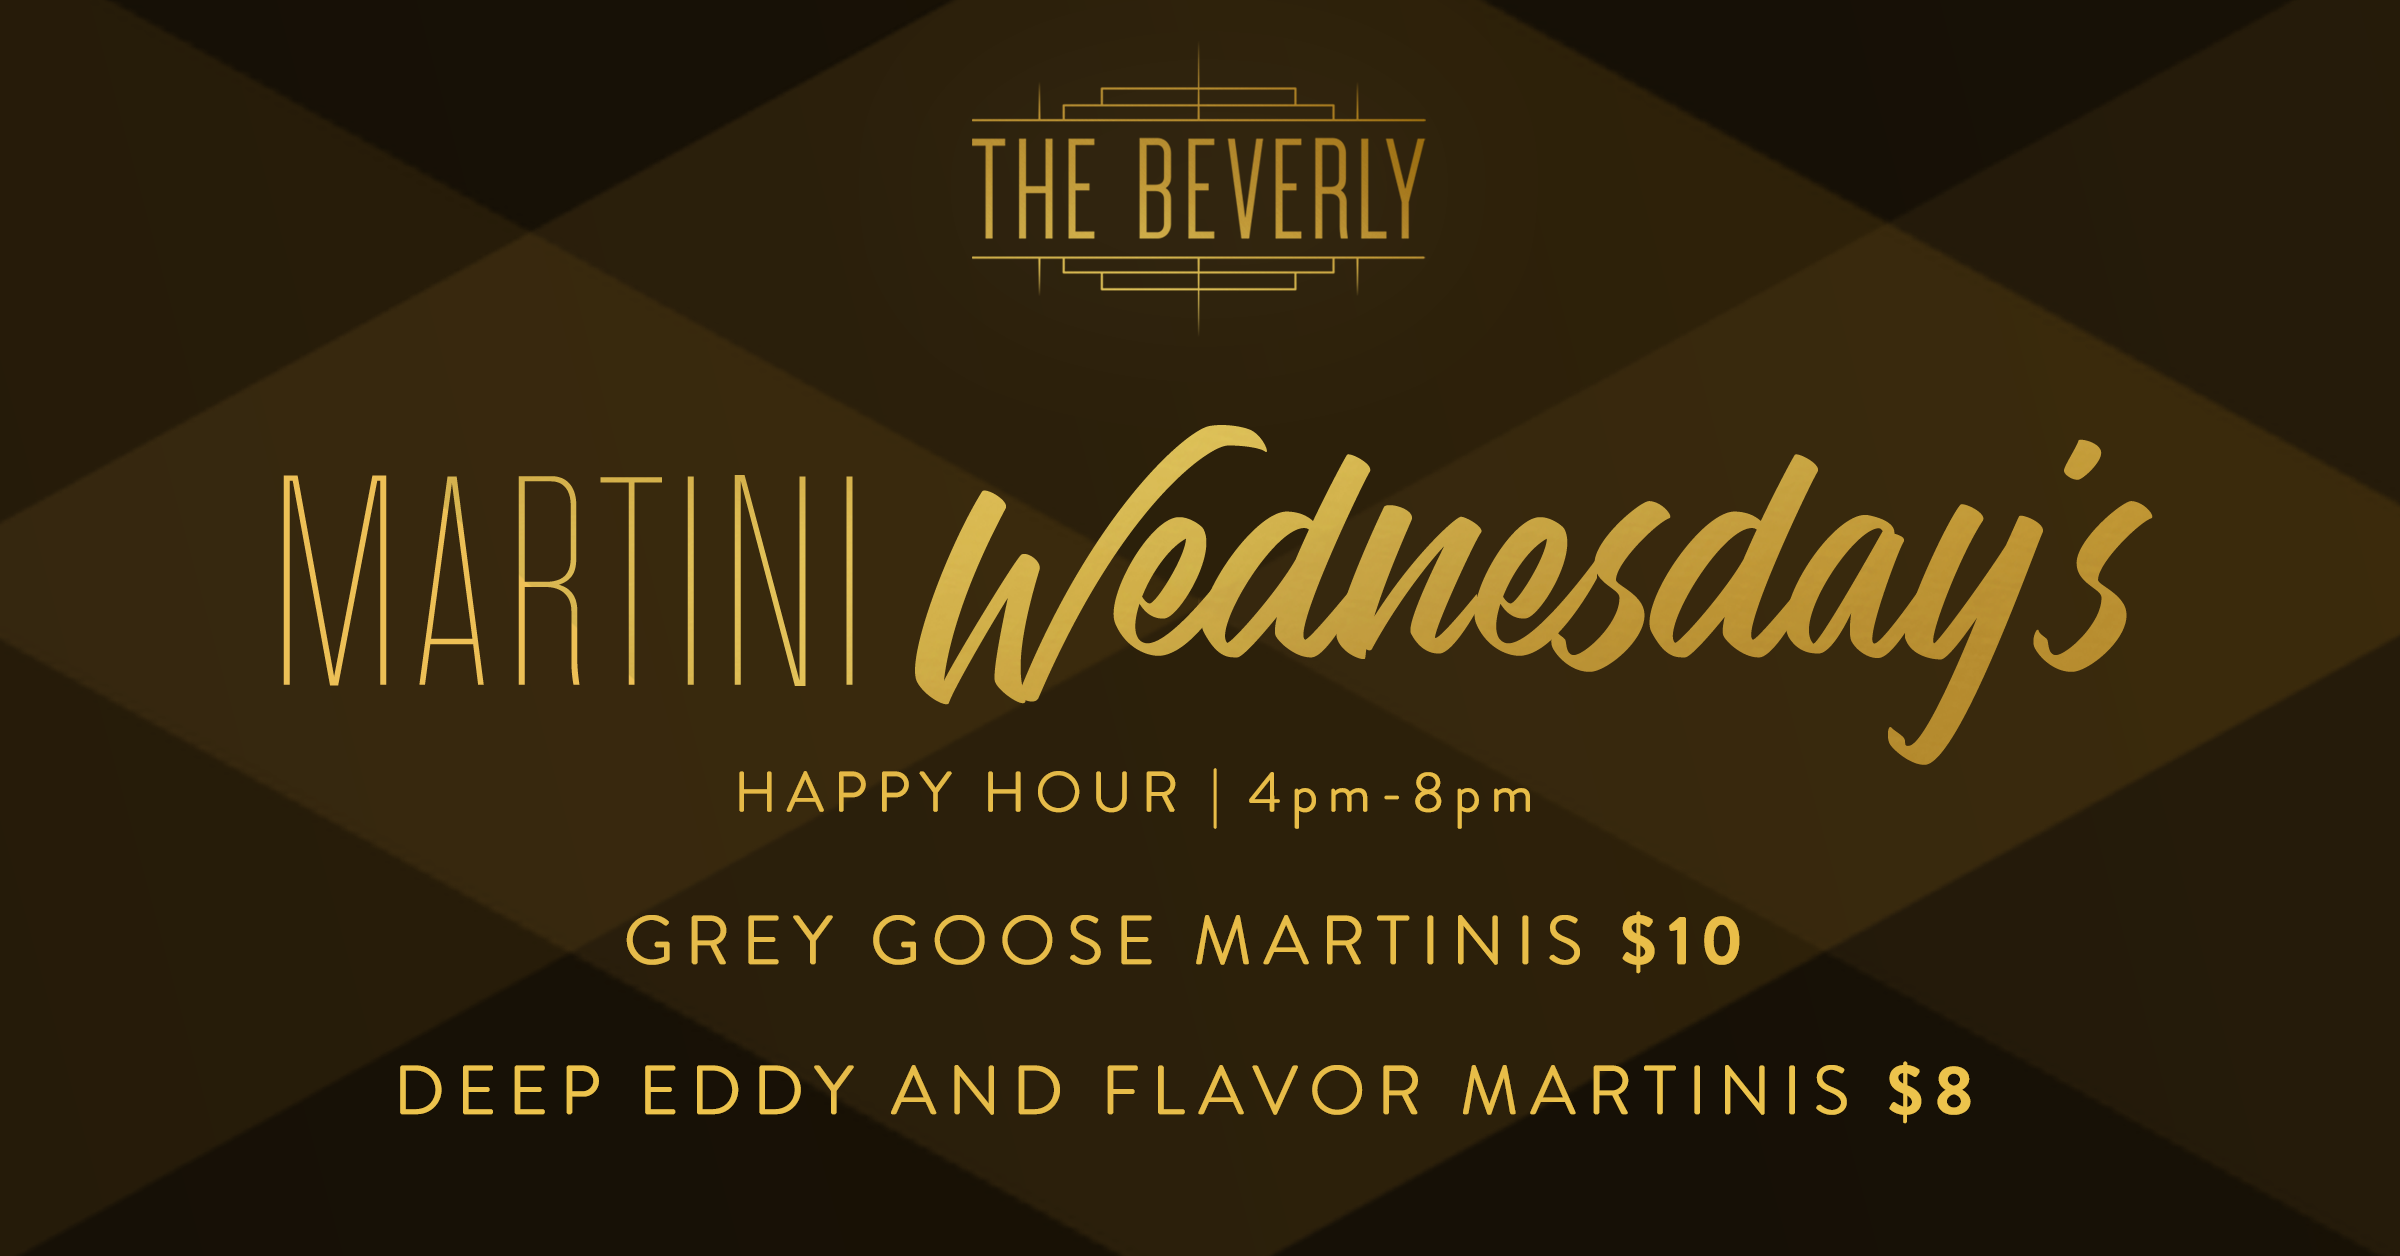 Martini wed facebook post